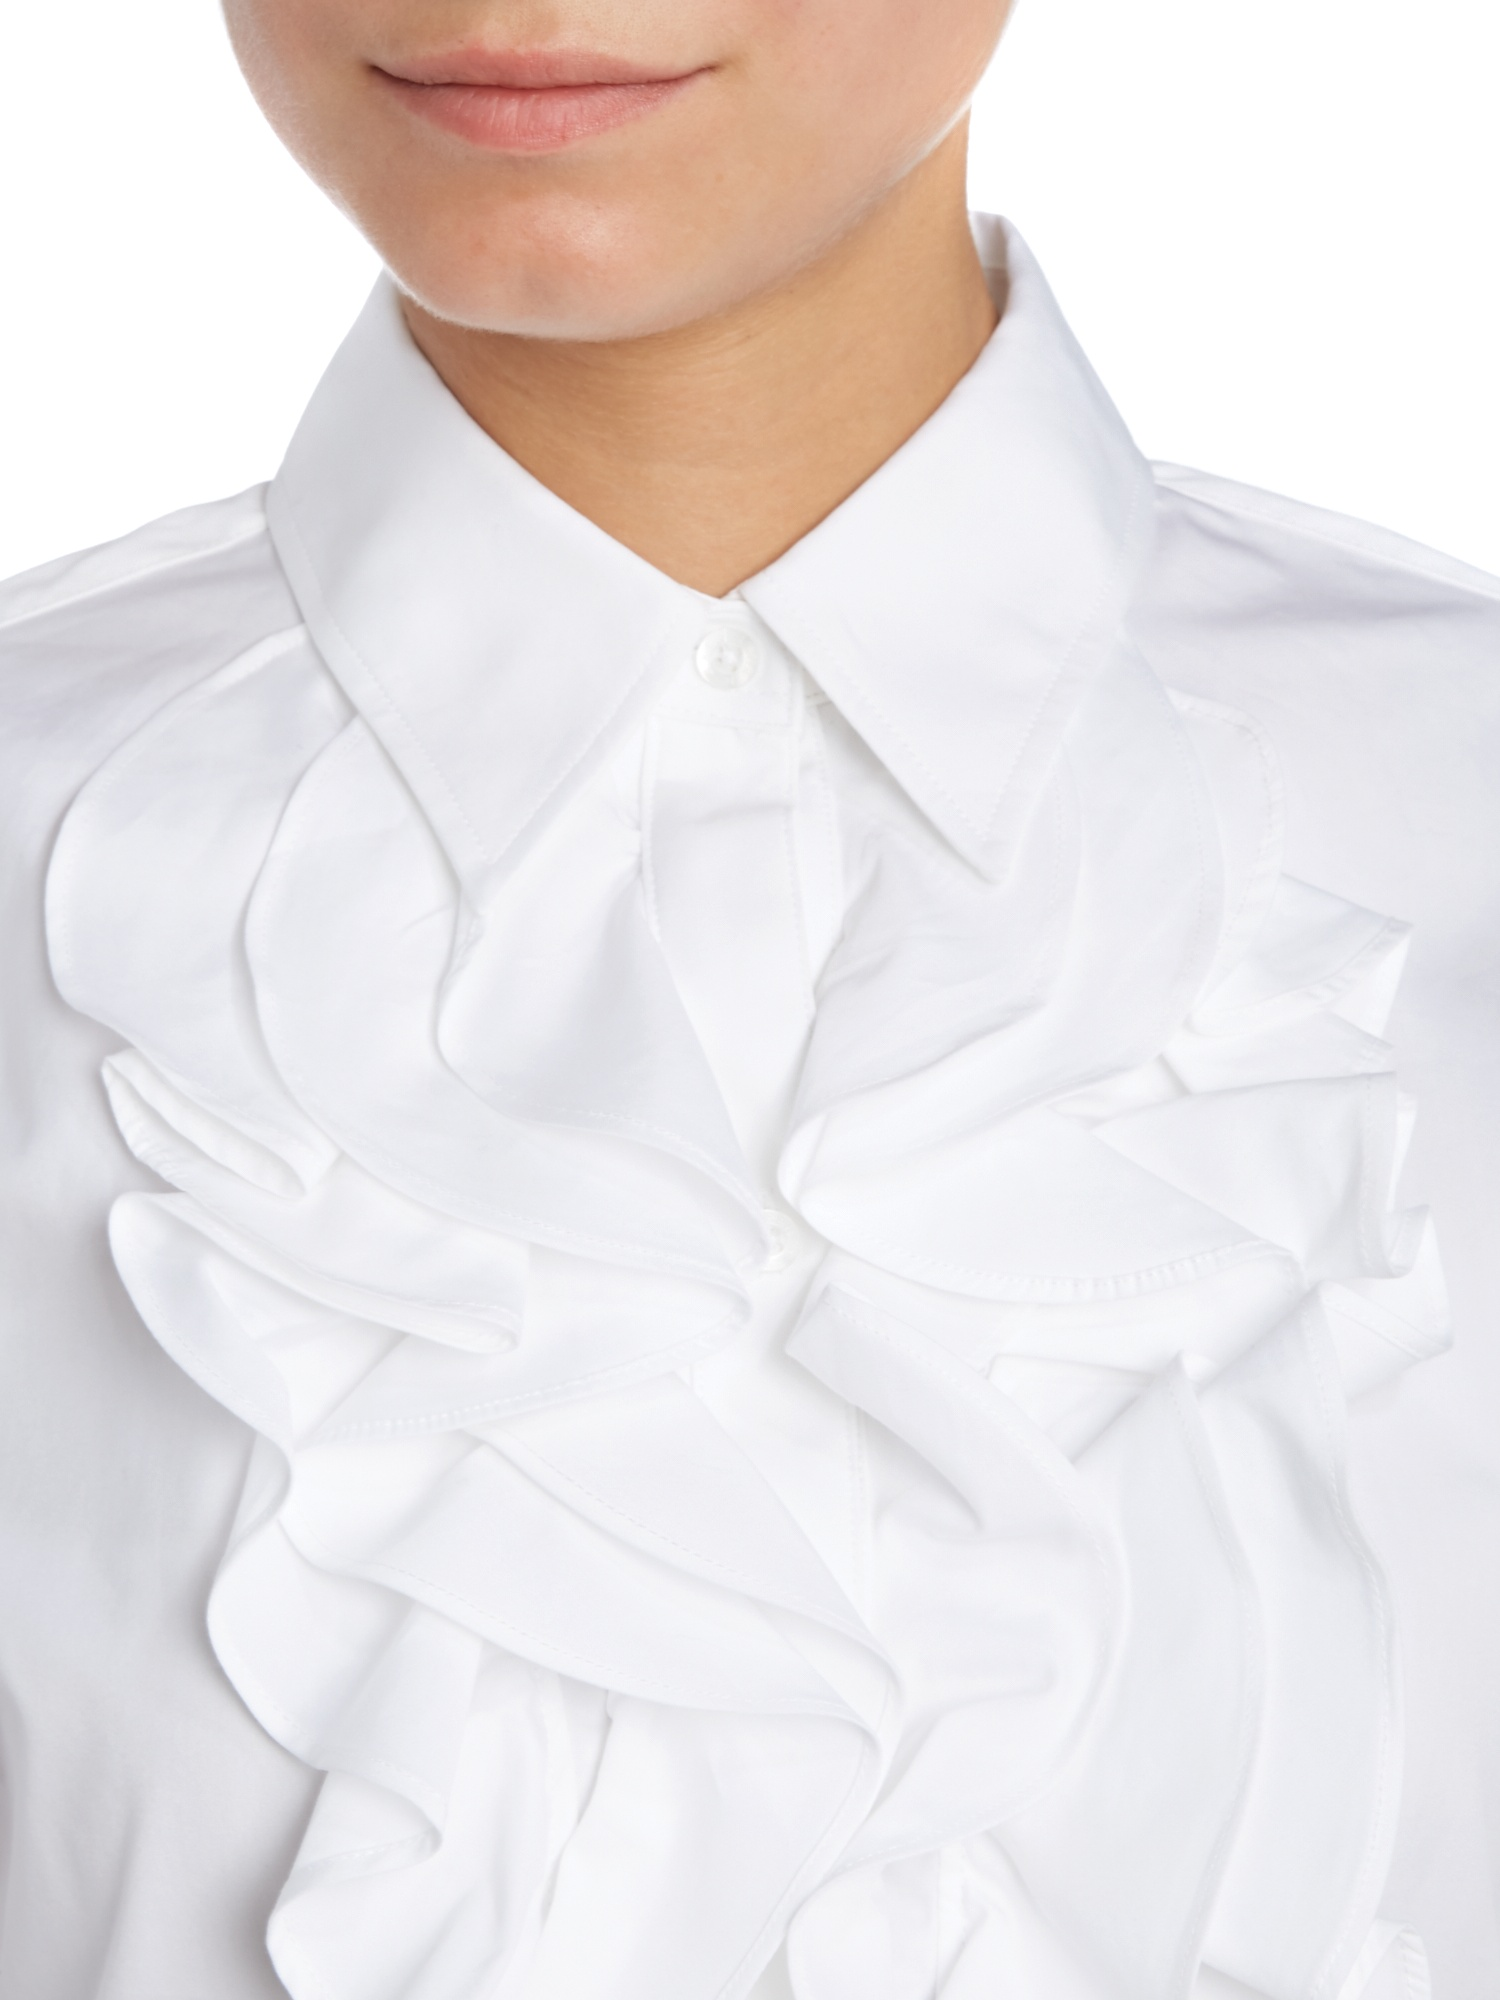 Sleeveless Blouses With Collars